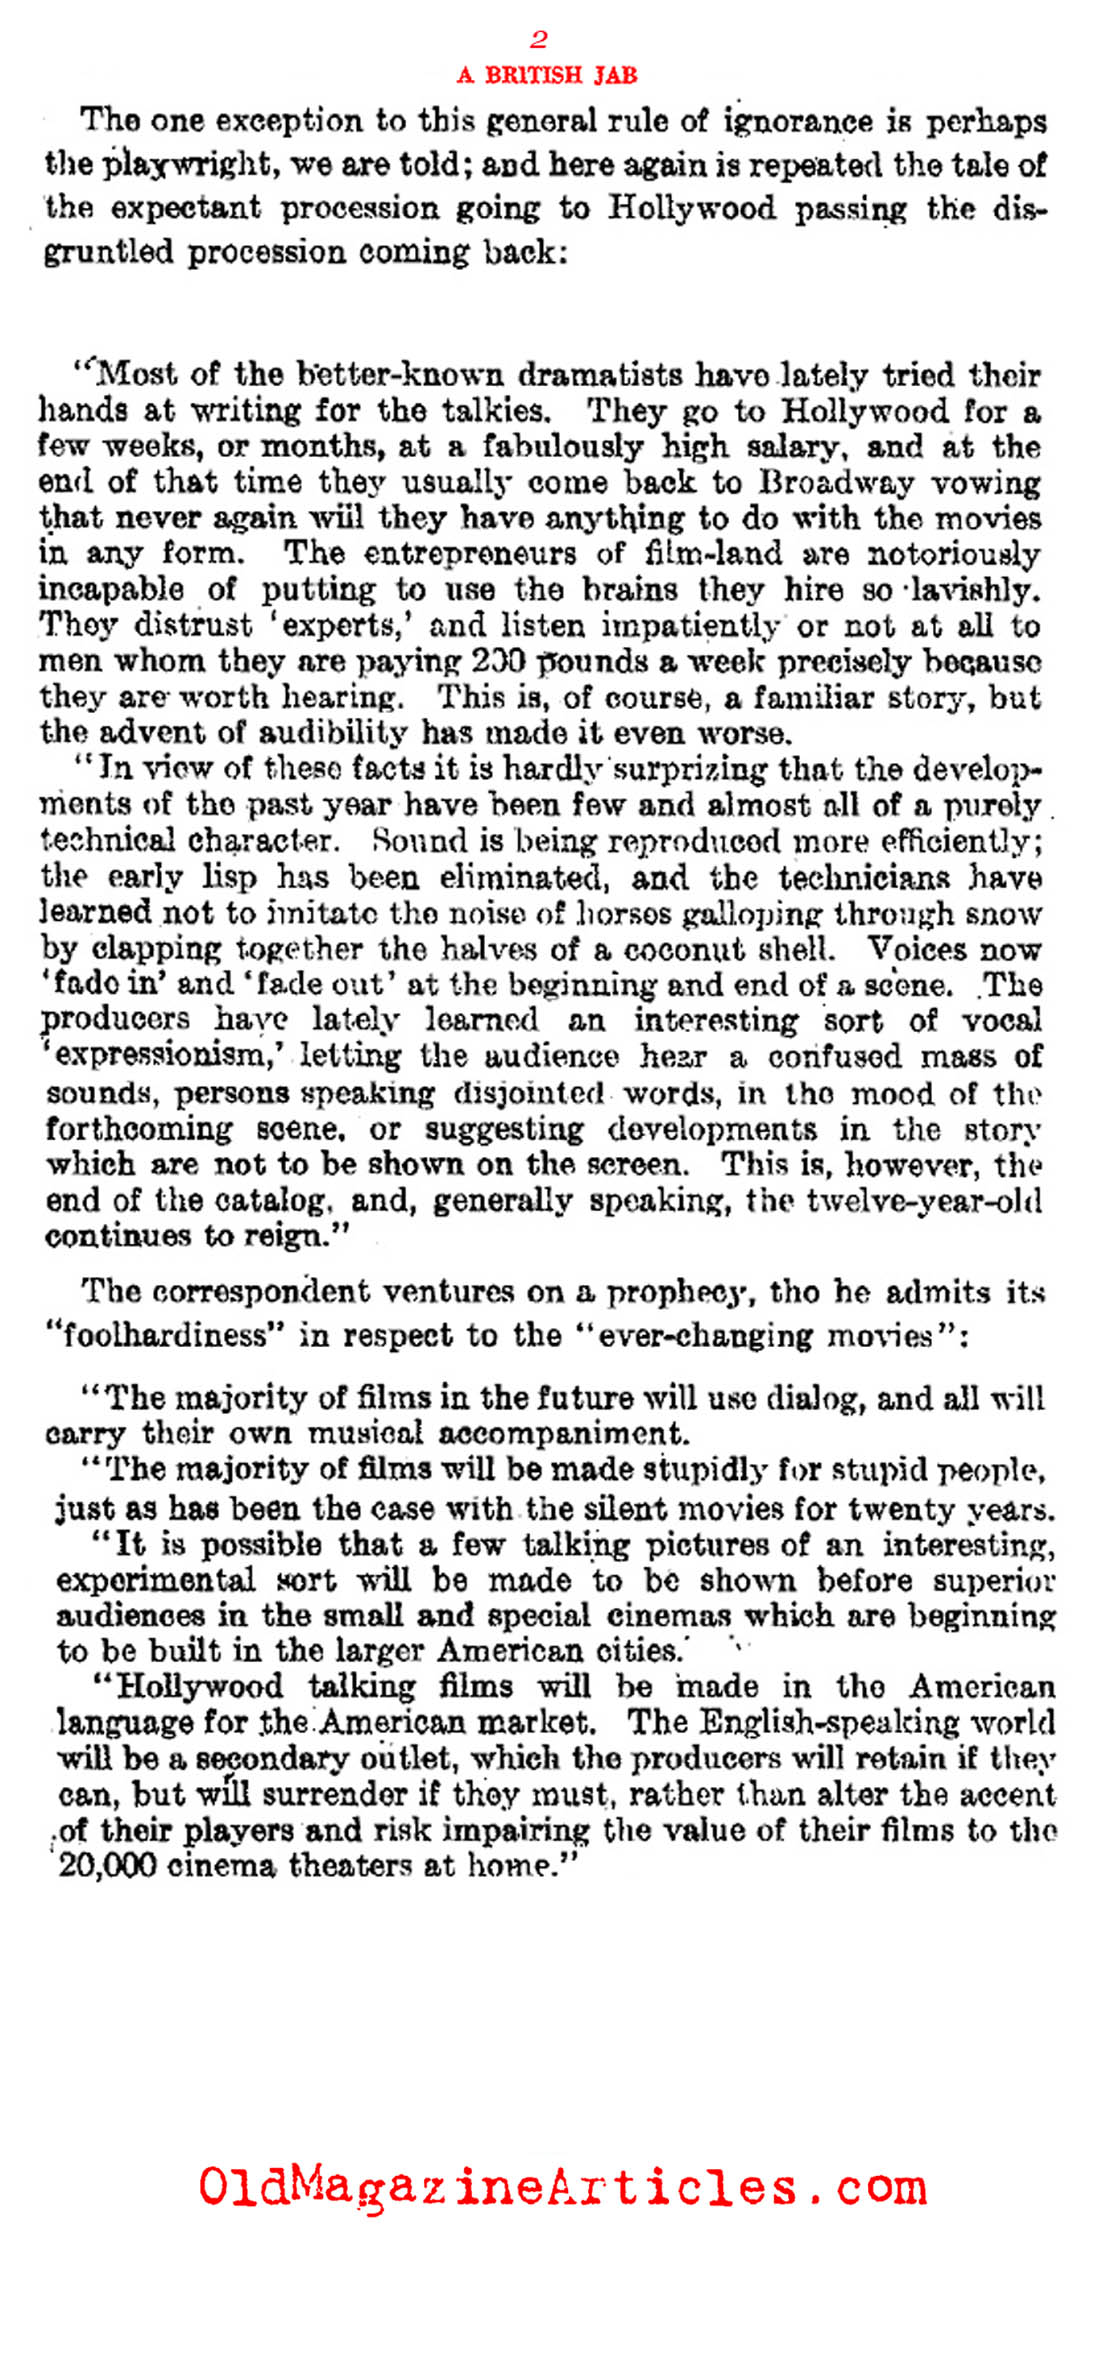 Some British Opinions About the First Talking Movies (Literary Digest, 1929)